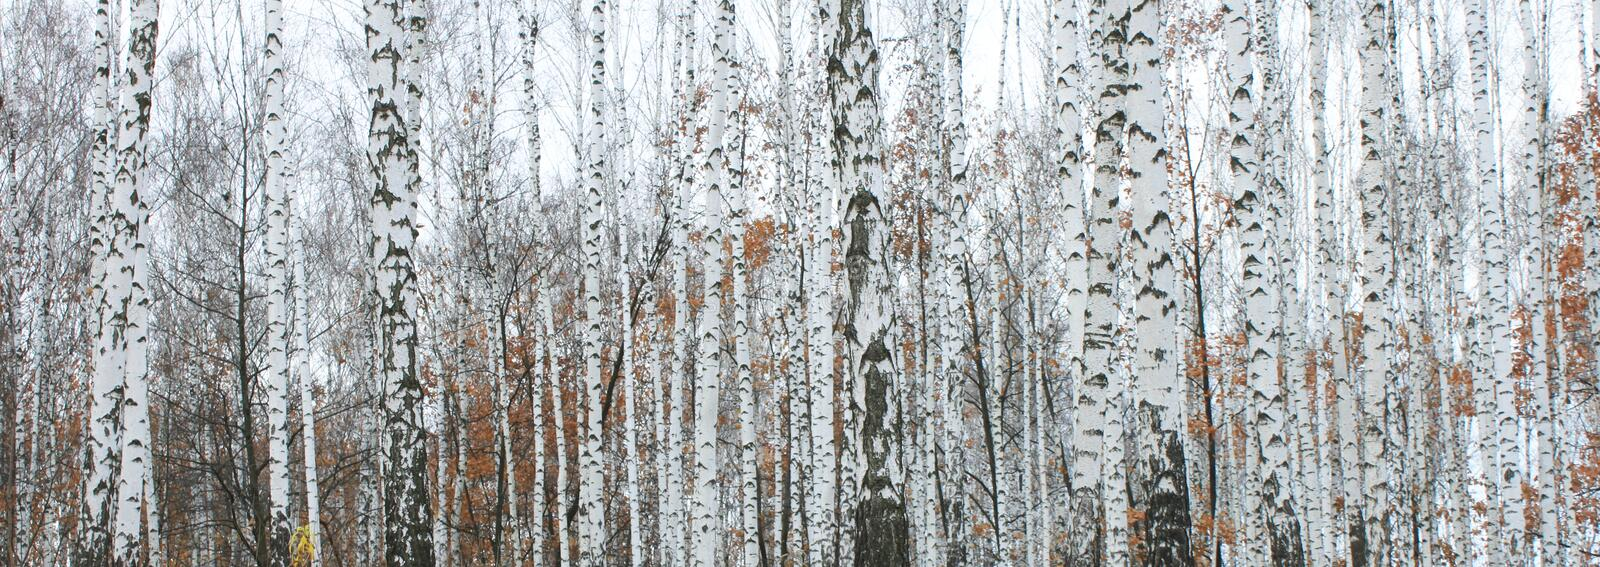 Birch forest in october royalty free stock photo